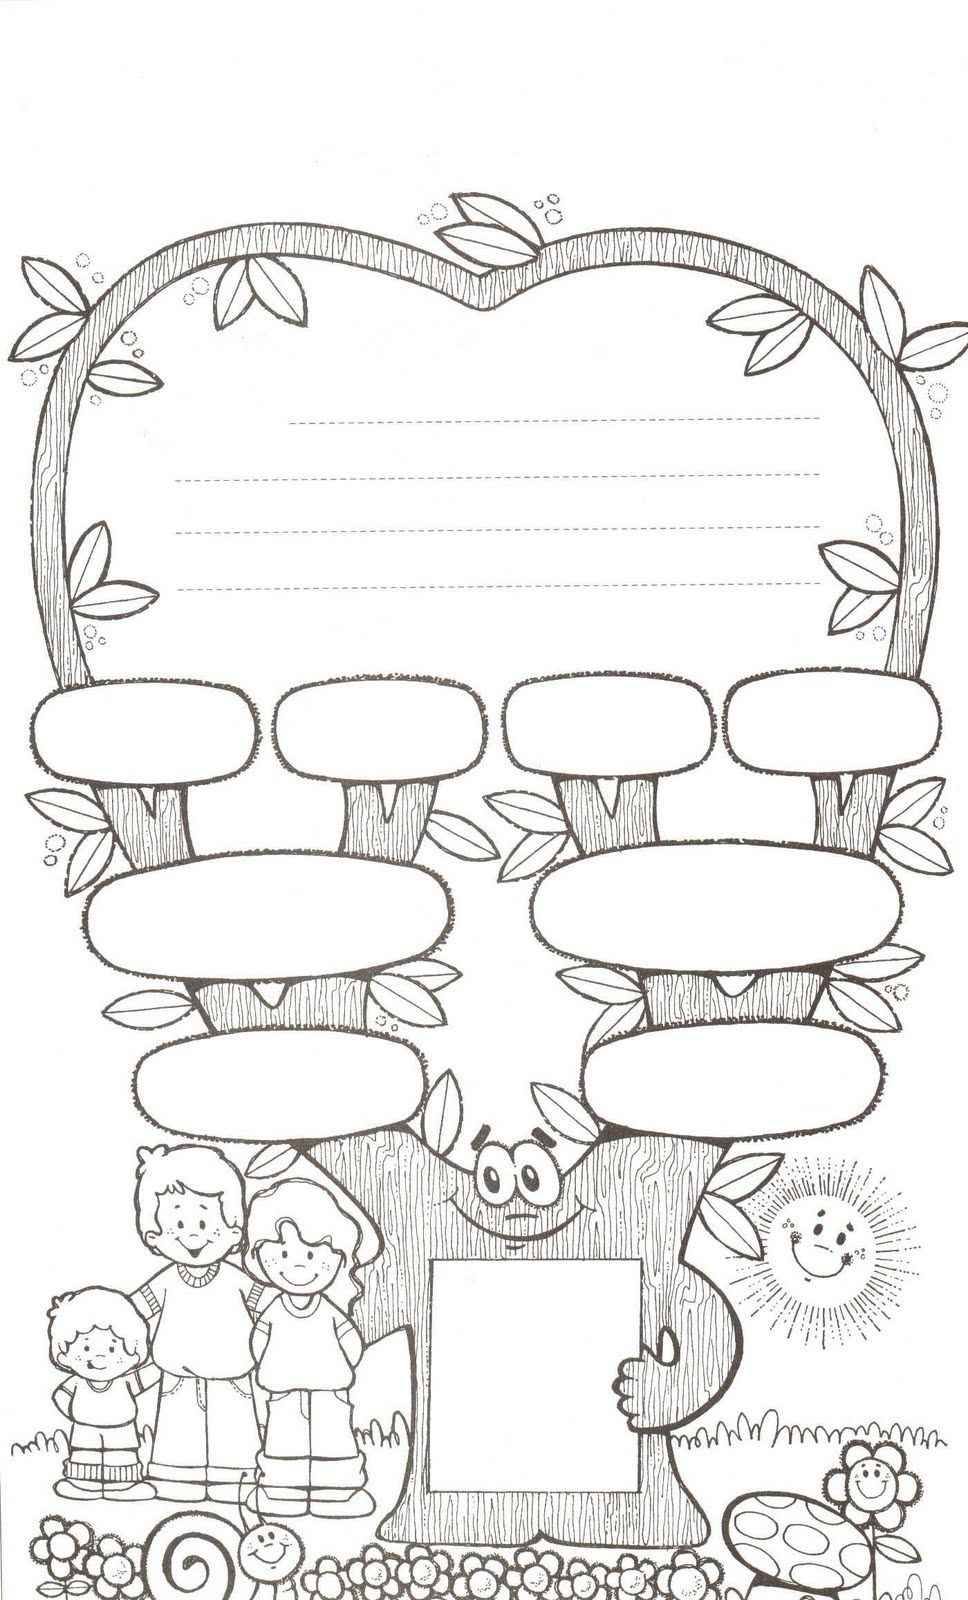 Printable My Family worksheets ESL ELL activityvillage – Family Tree Worksheets